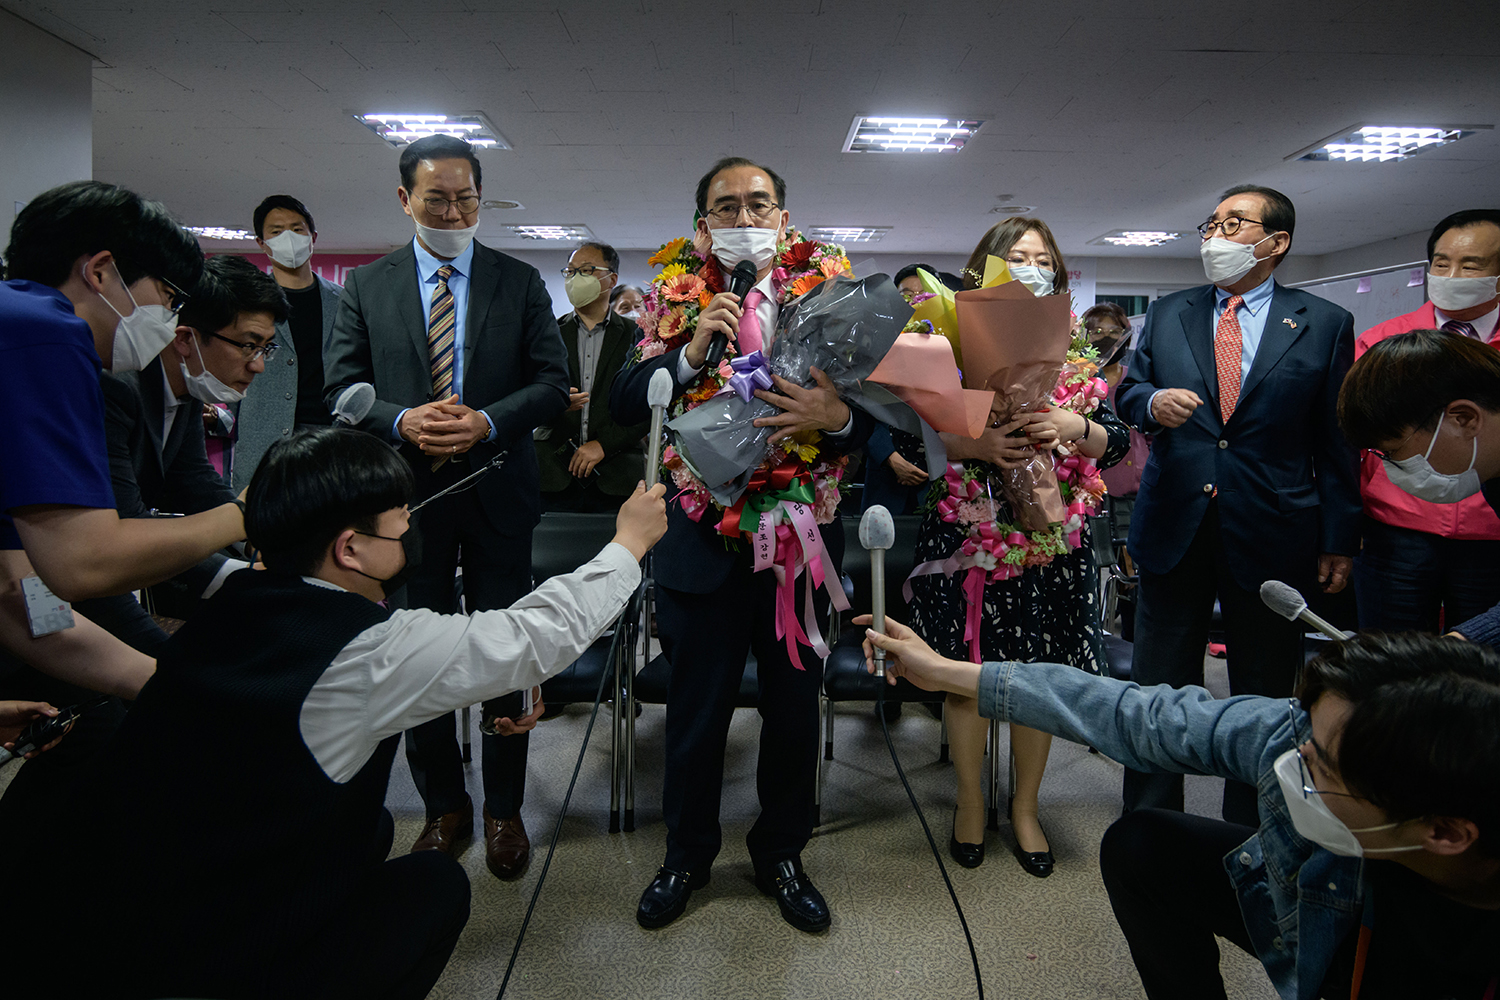 Thae speaks to the media after securing a majority vote in his Gangnam constituency on behalf of the conservative United Future Party during South Korea's parliamentary elections, at his campaign headquarters in the Gangnam district of Seoul on April 16.